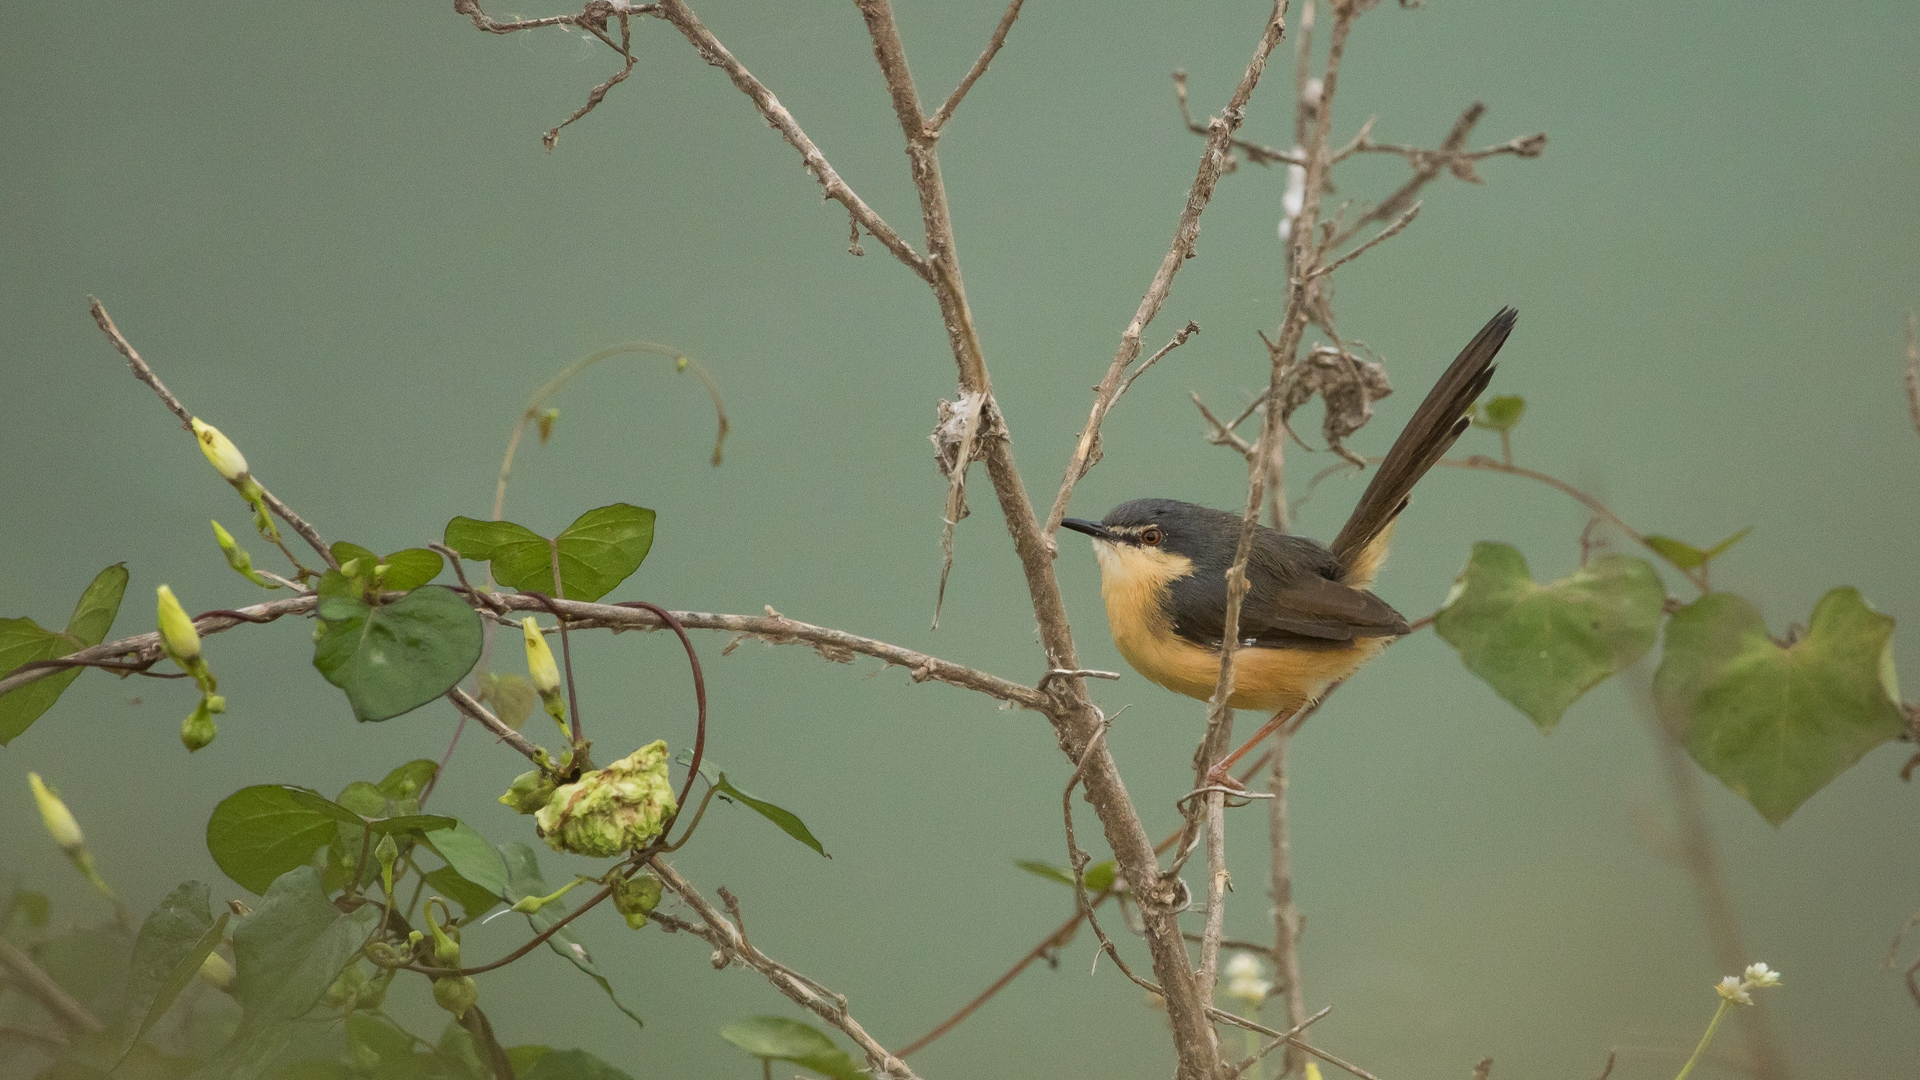 Listening to birds amidst the urban hustle-bustle | Research Matters